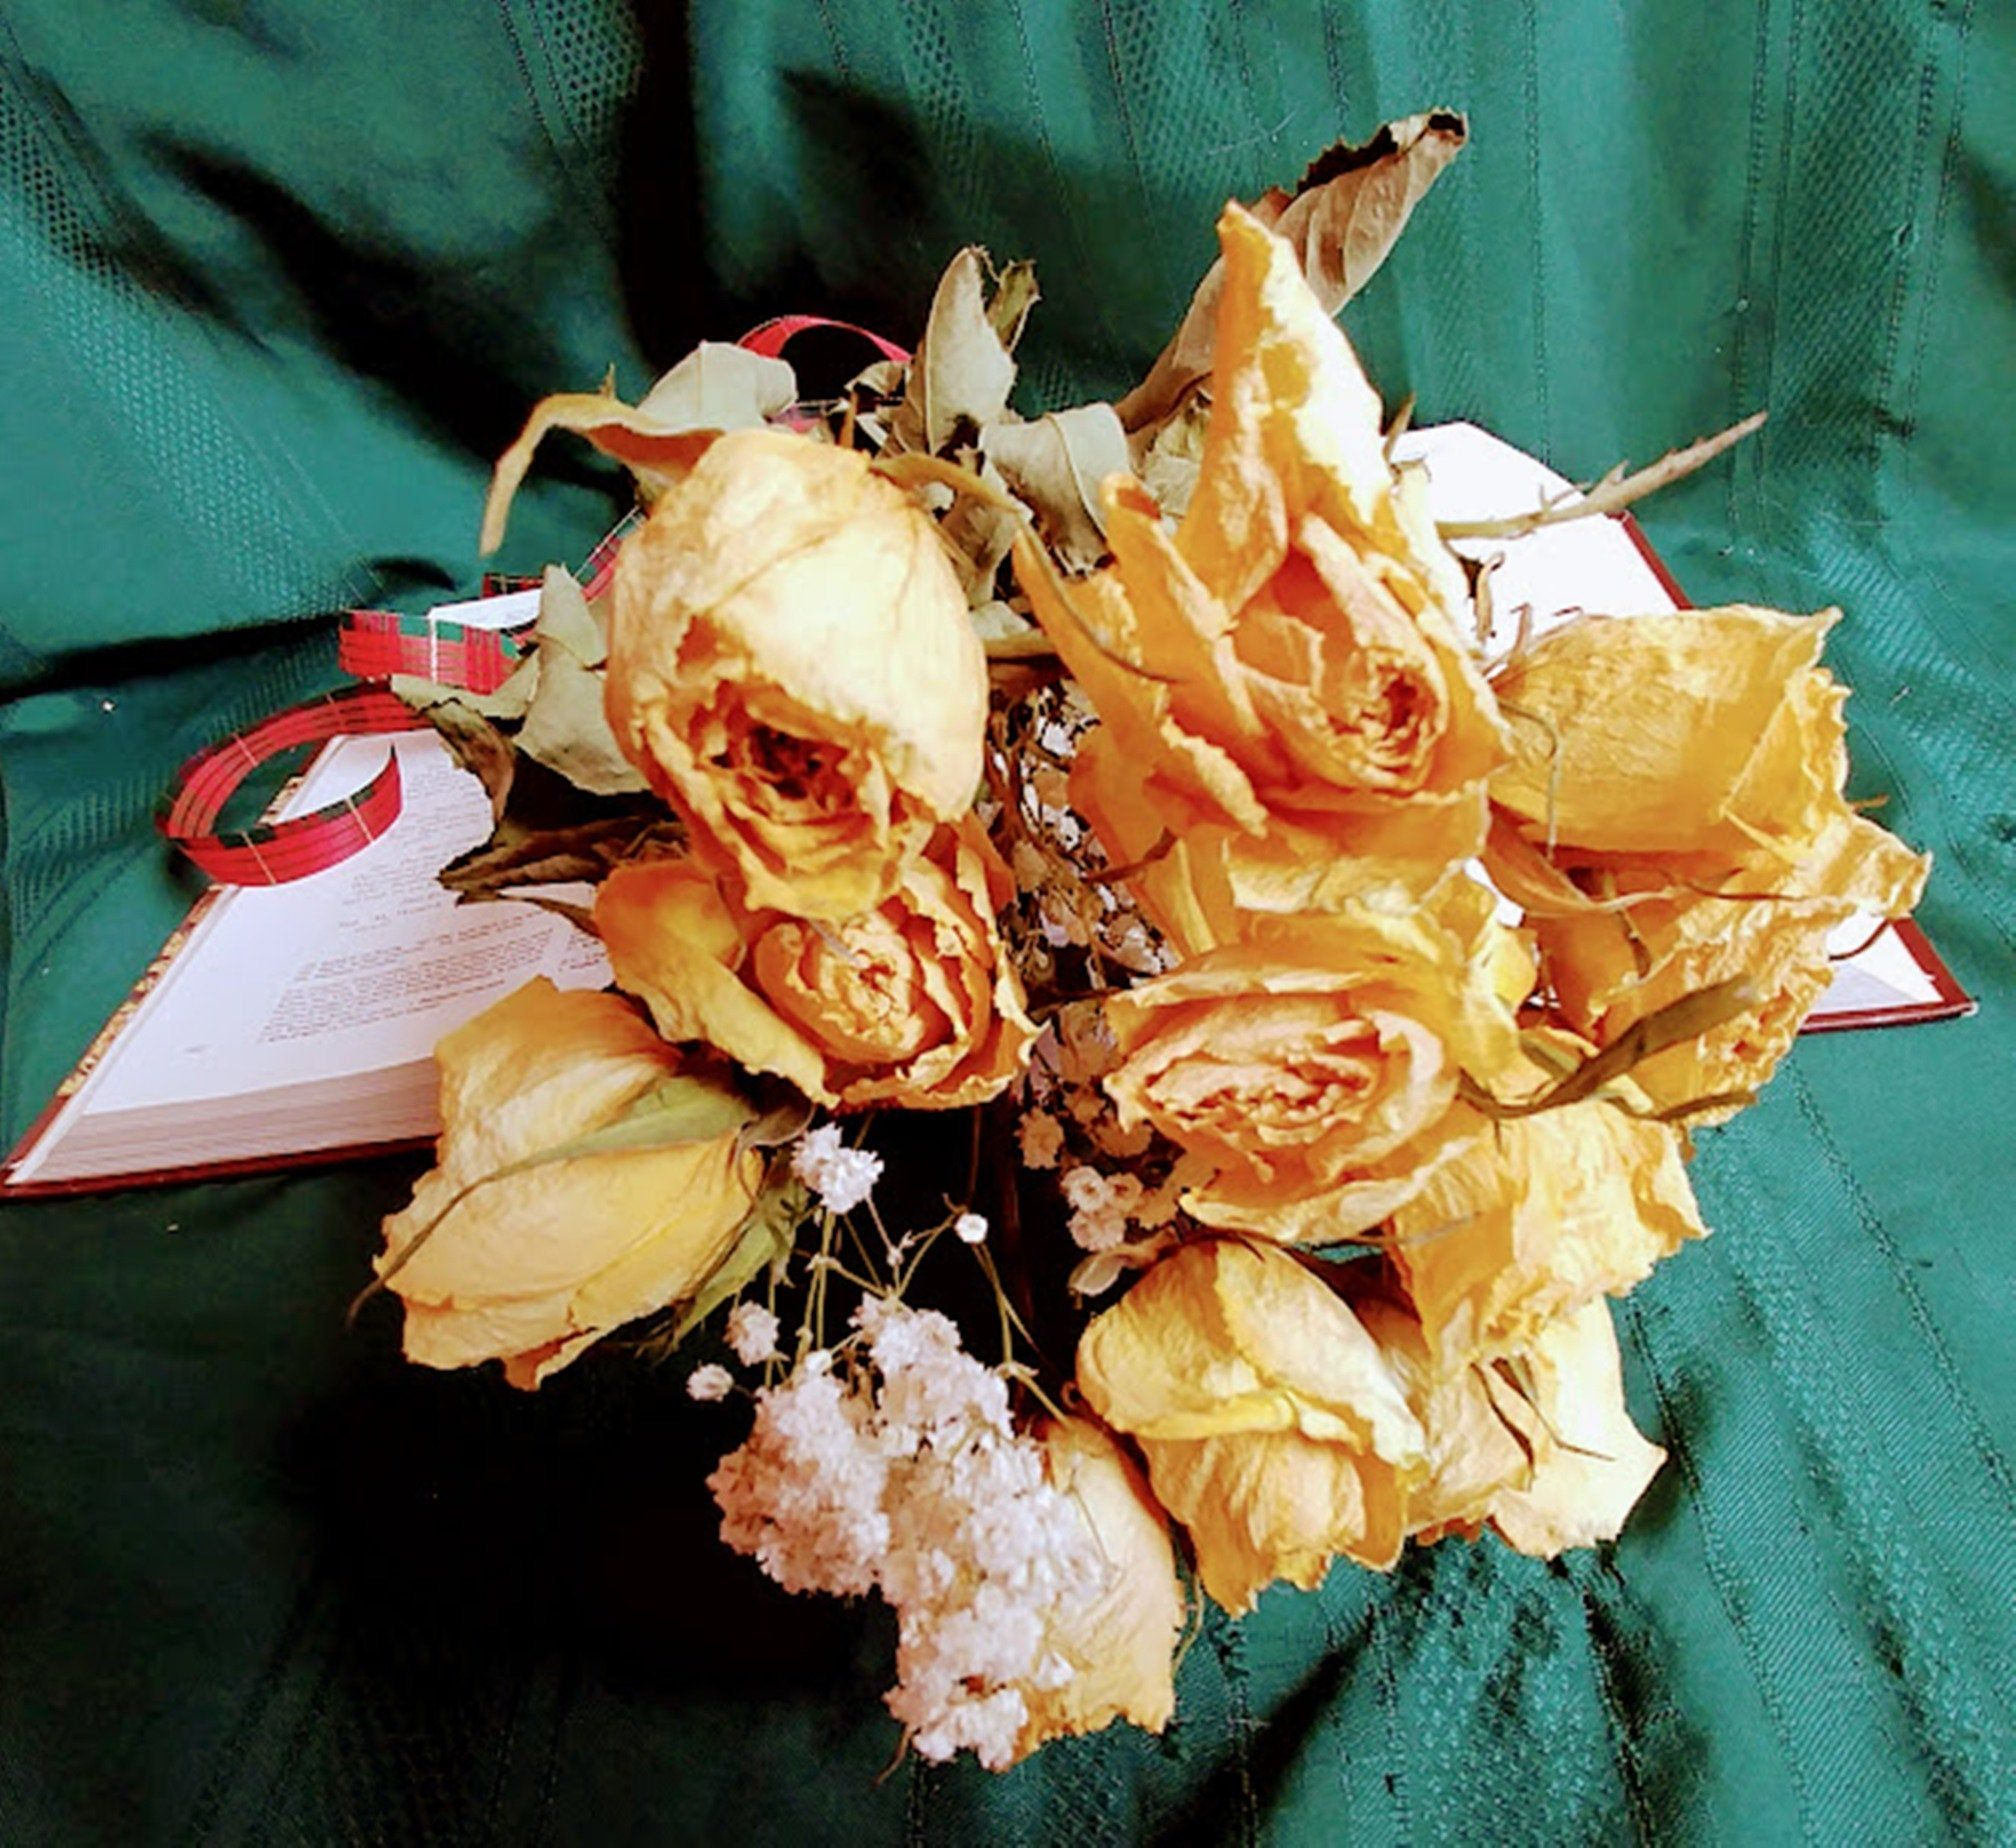 Dried Flower Bouquet Roses Real Yellow Dried Rose Flower Arrangement Air Dried Natural Roses Weddin In 2020 Rose Flower Arrangements Dried Flower Bouquet Dried Flowers